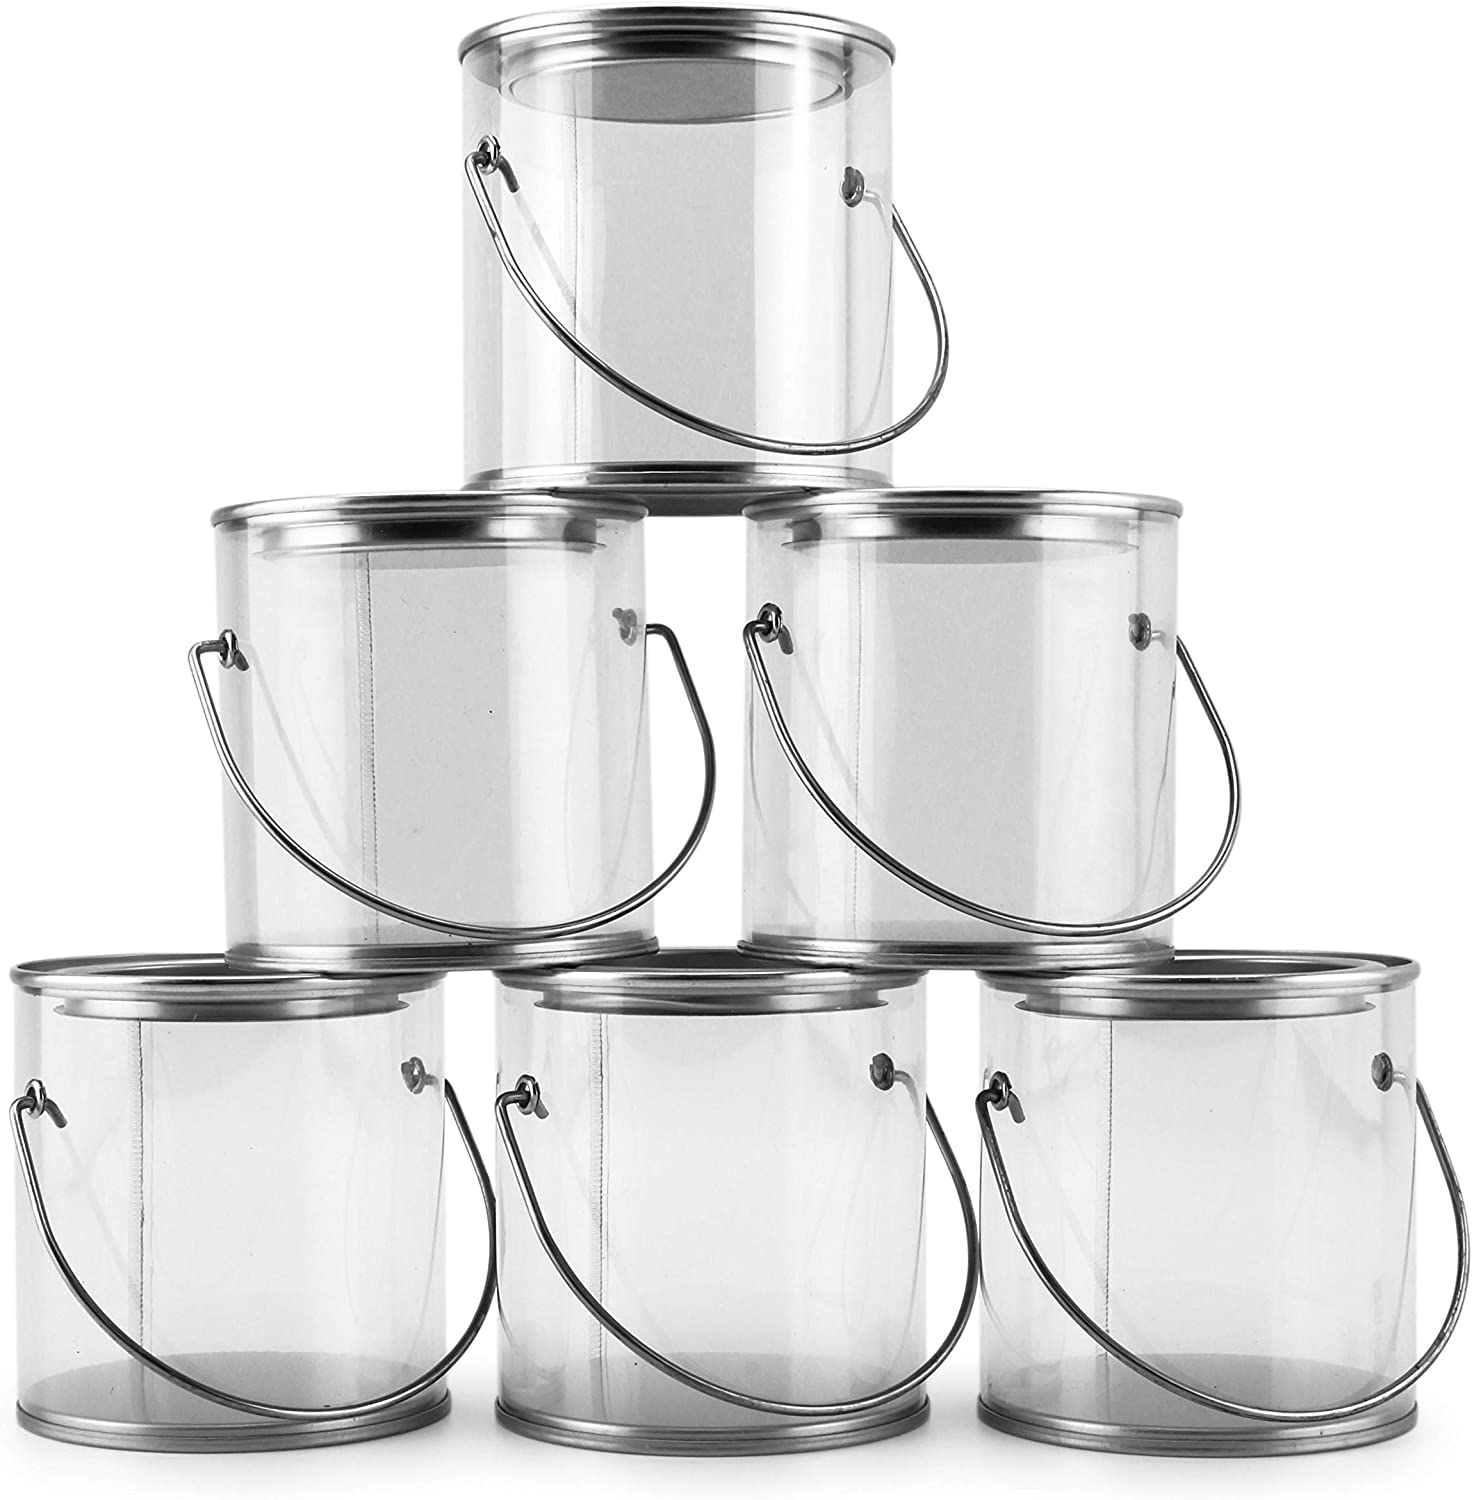 Mini Clear Plastic Paint Cans (6-Pack), 3-Inch Tall